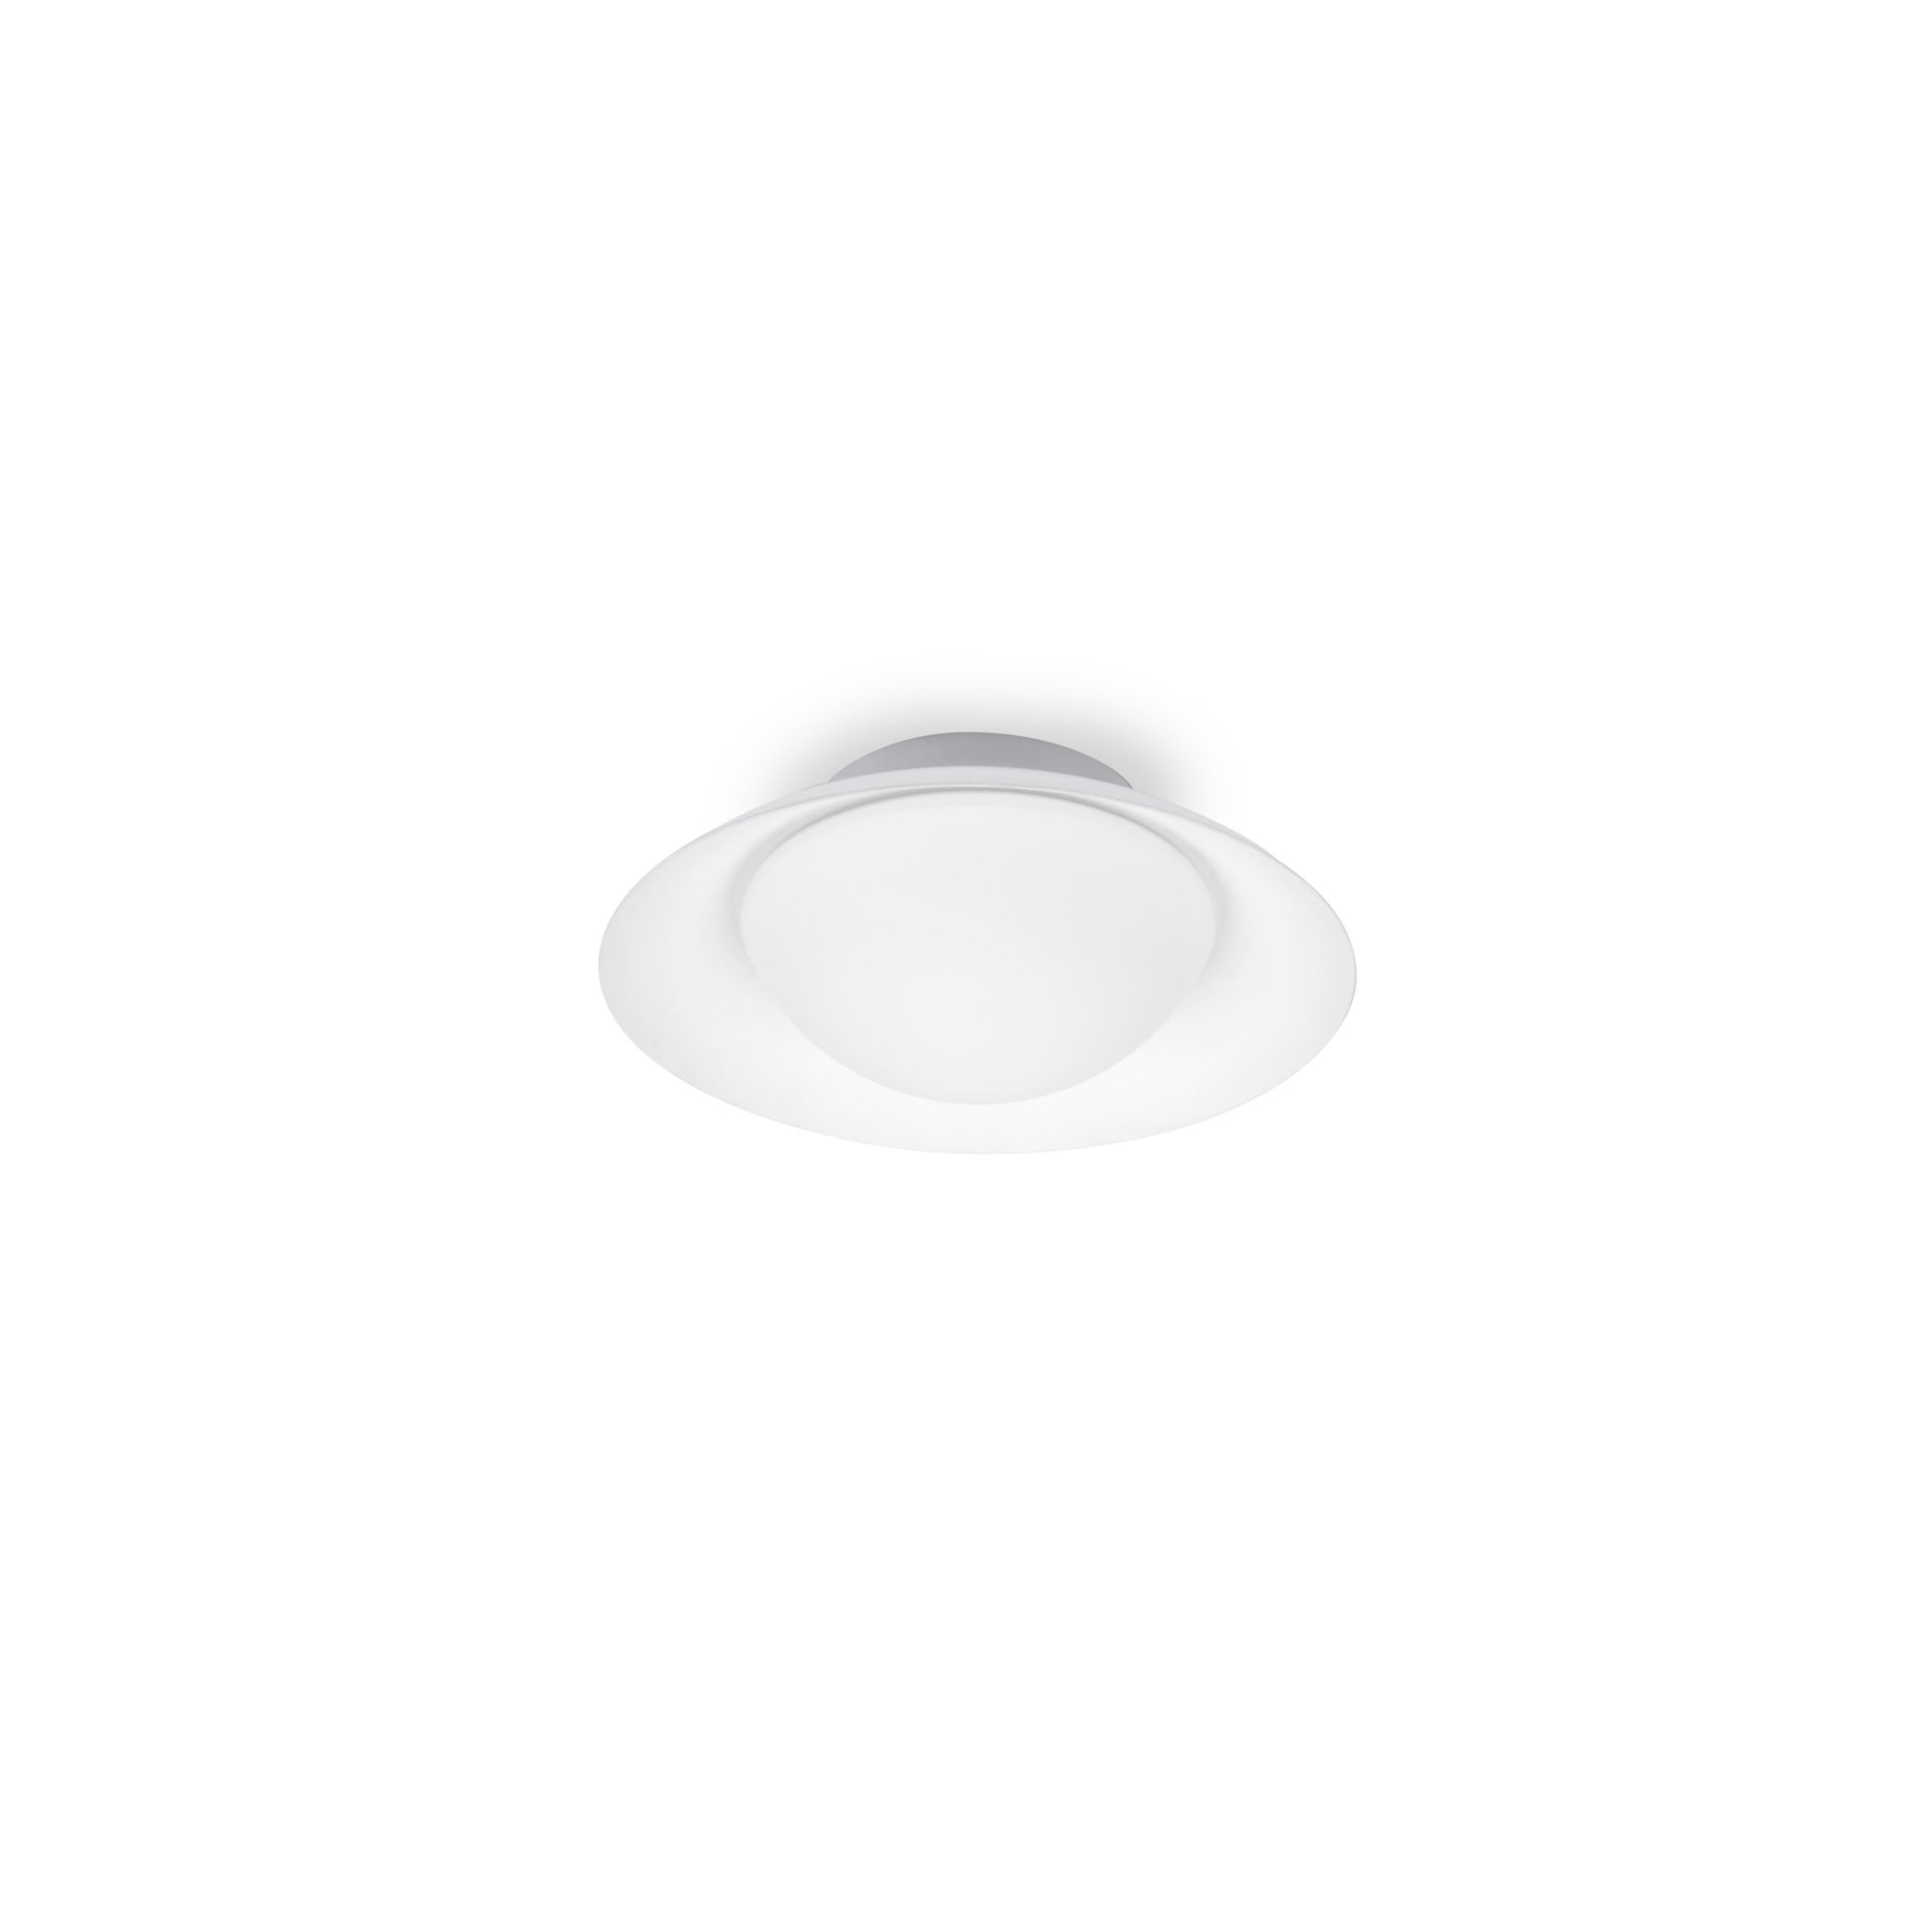 SIDE PLAFON Ø200 BLANCO/BLANCO G9 LED 28W